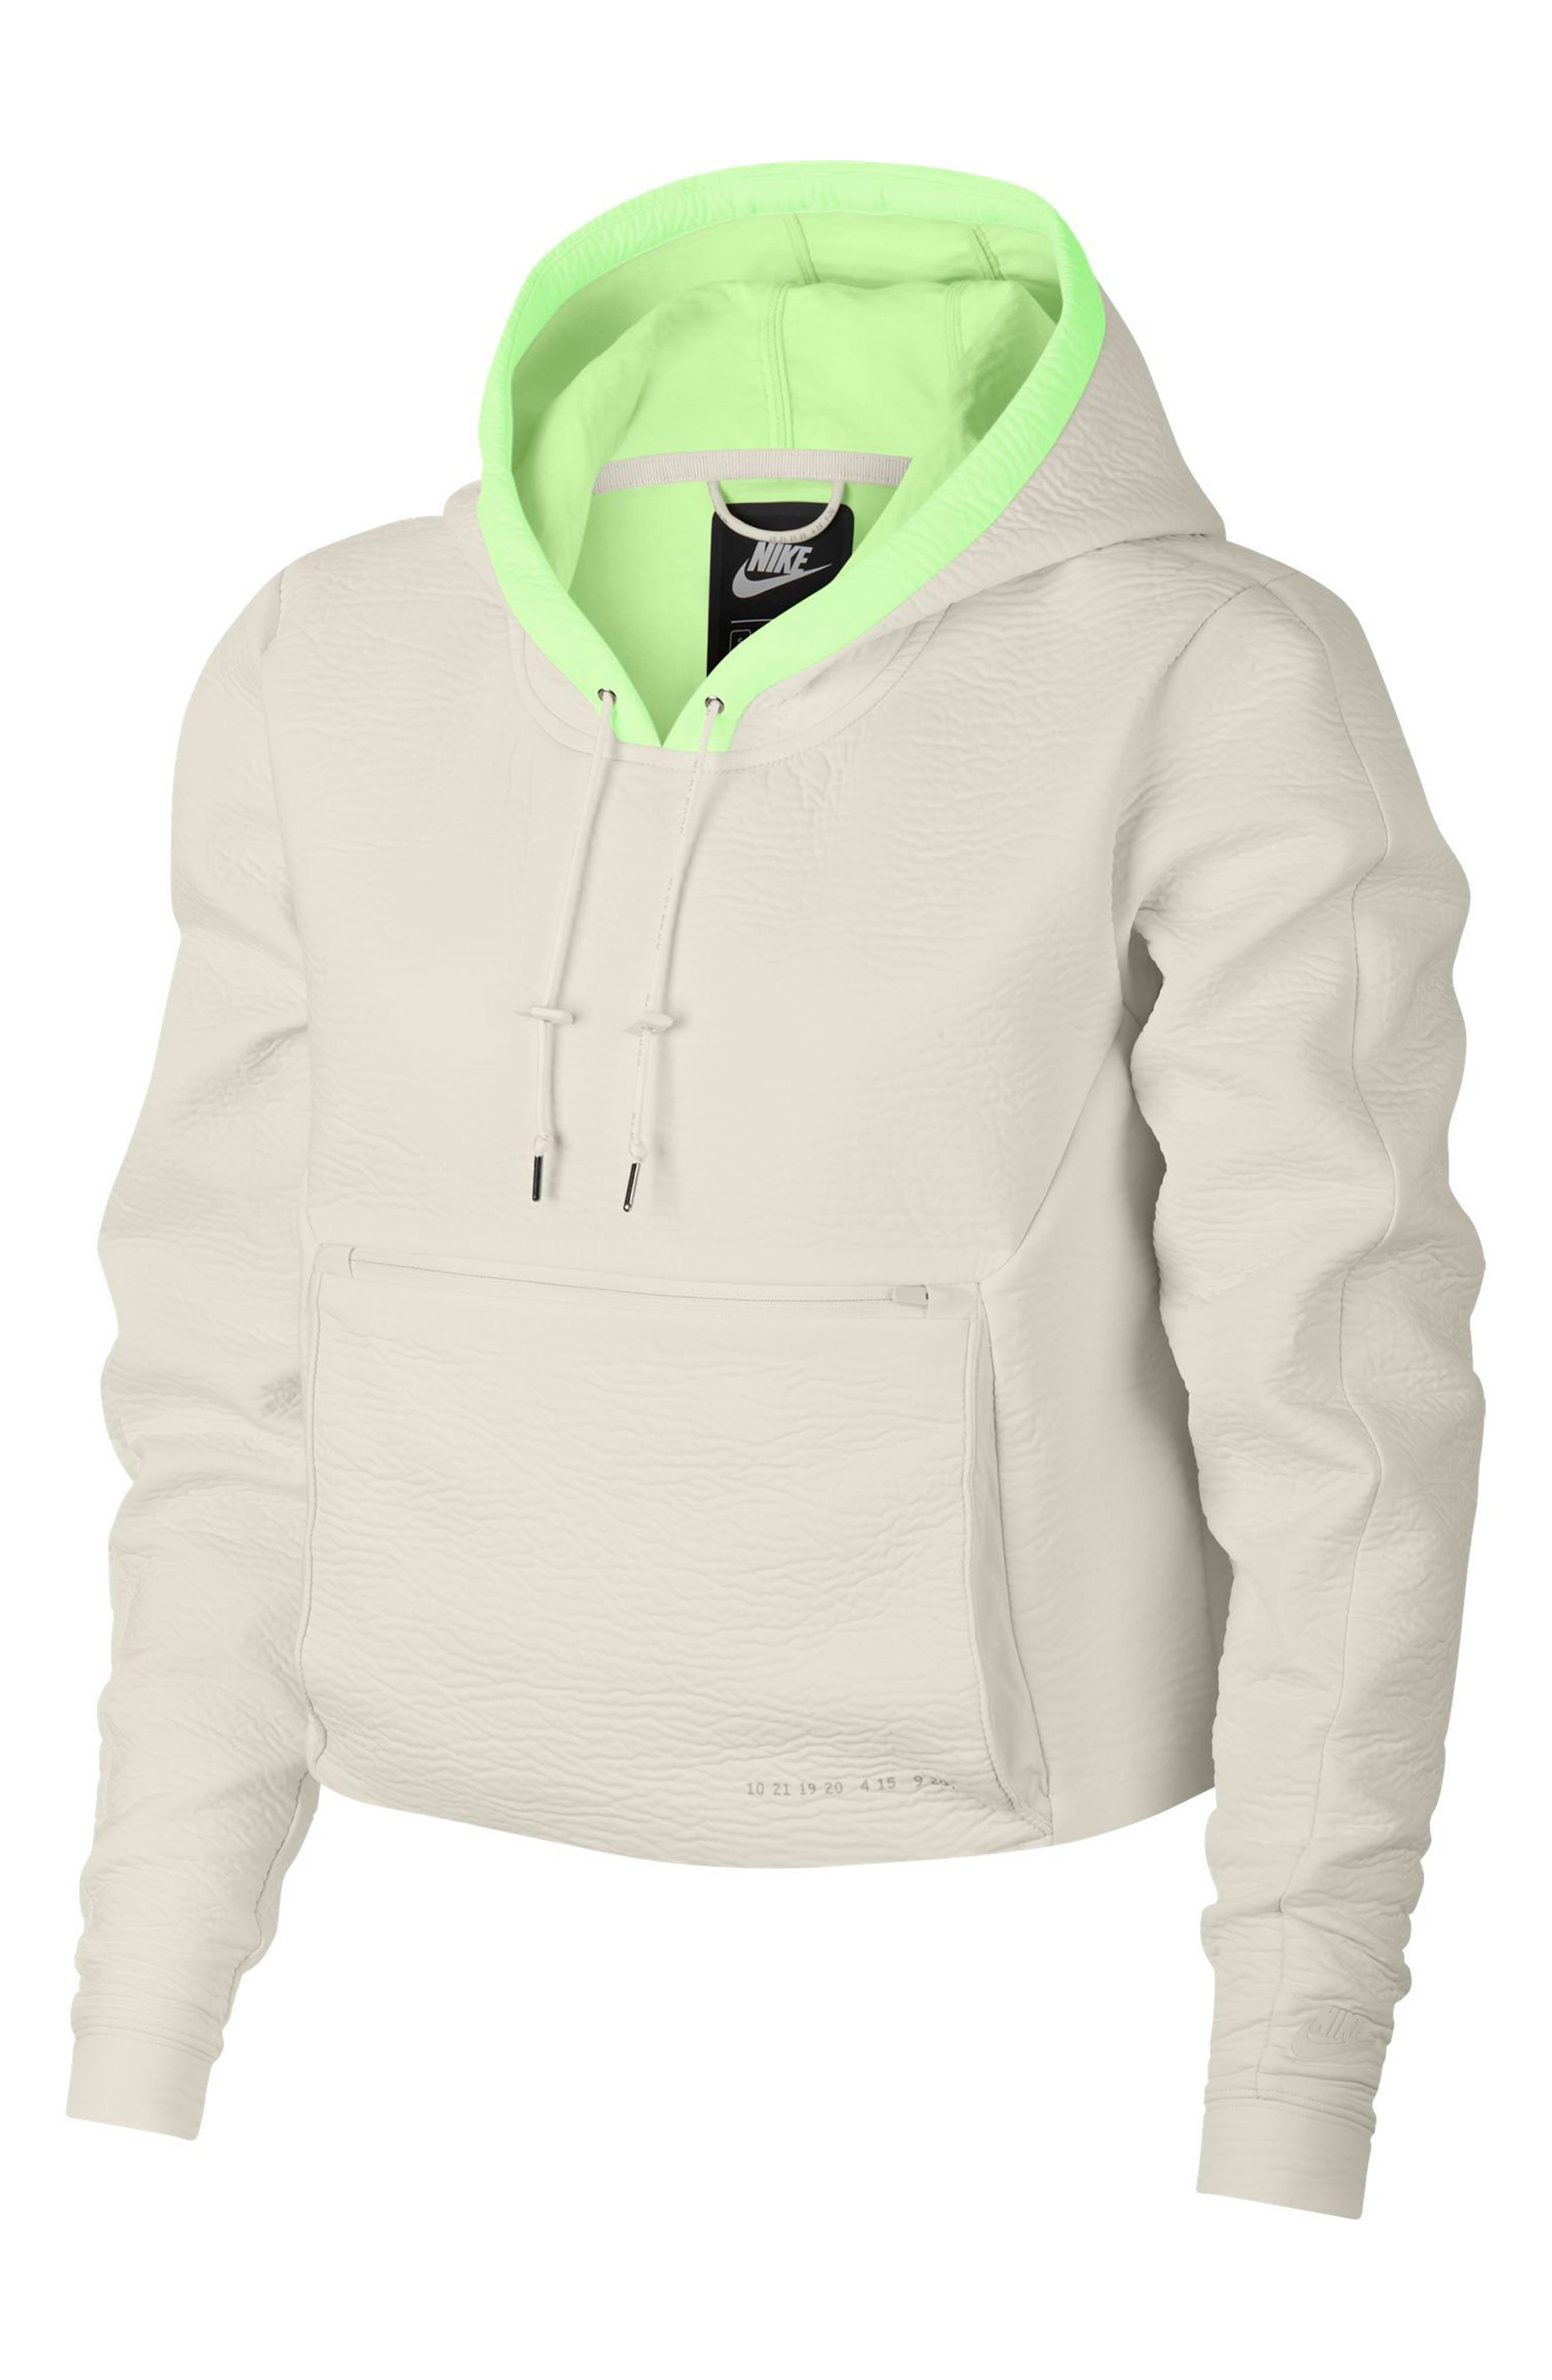 Sportswear Tech Pack Women's Hoodie,                             Main thumbnail 1, color,                             PHANTOM/ PHANTOM